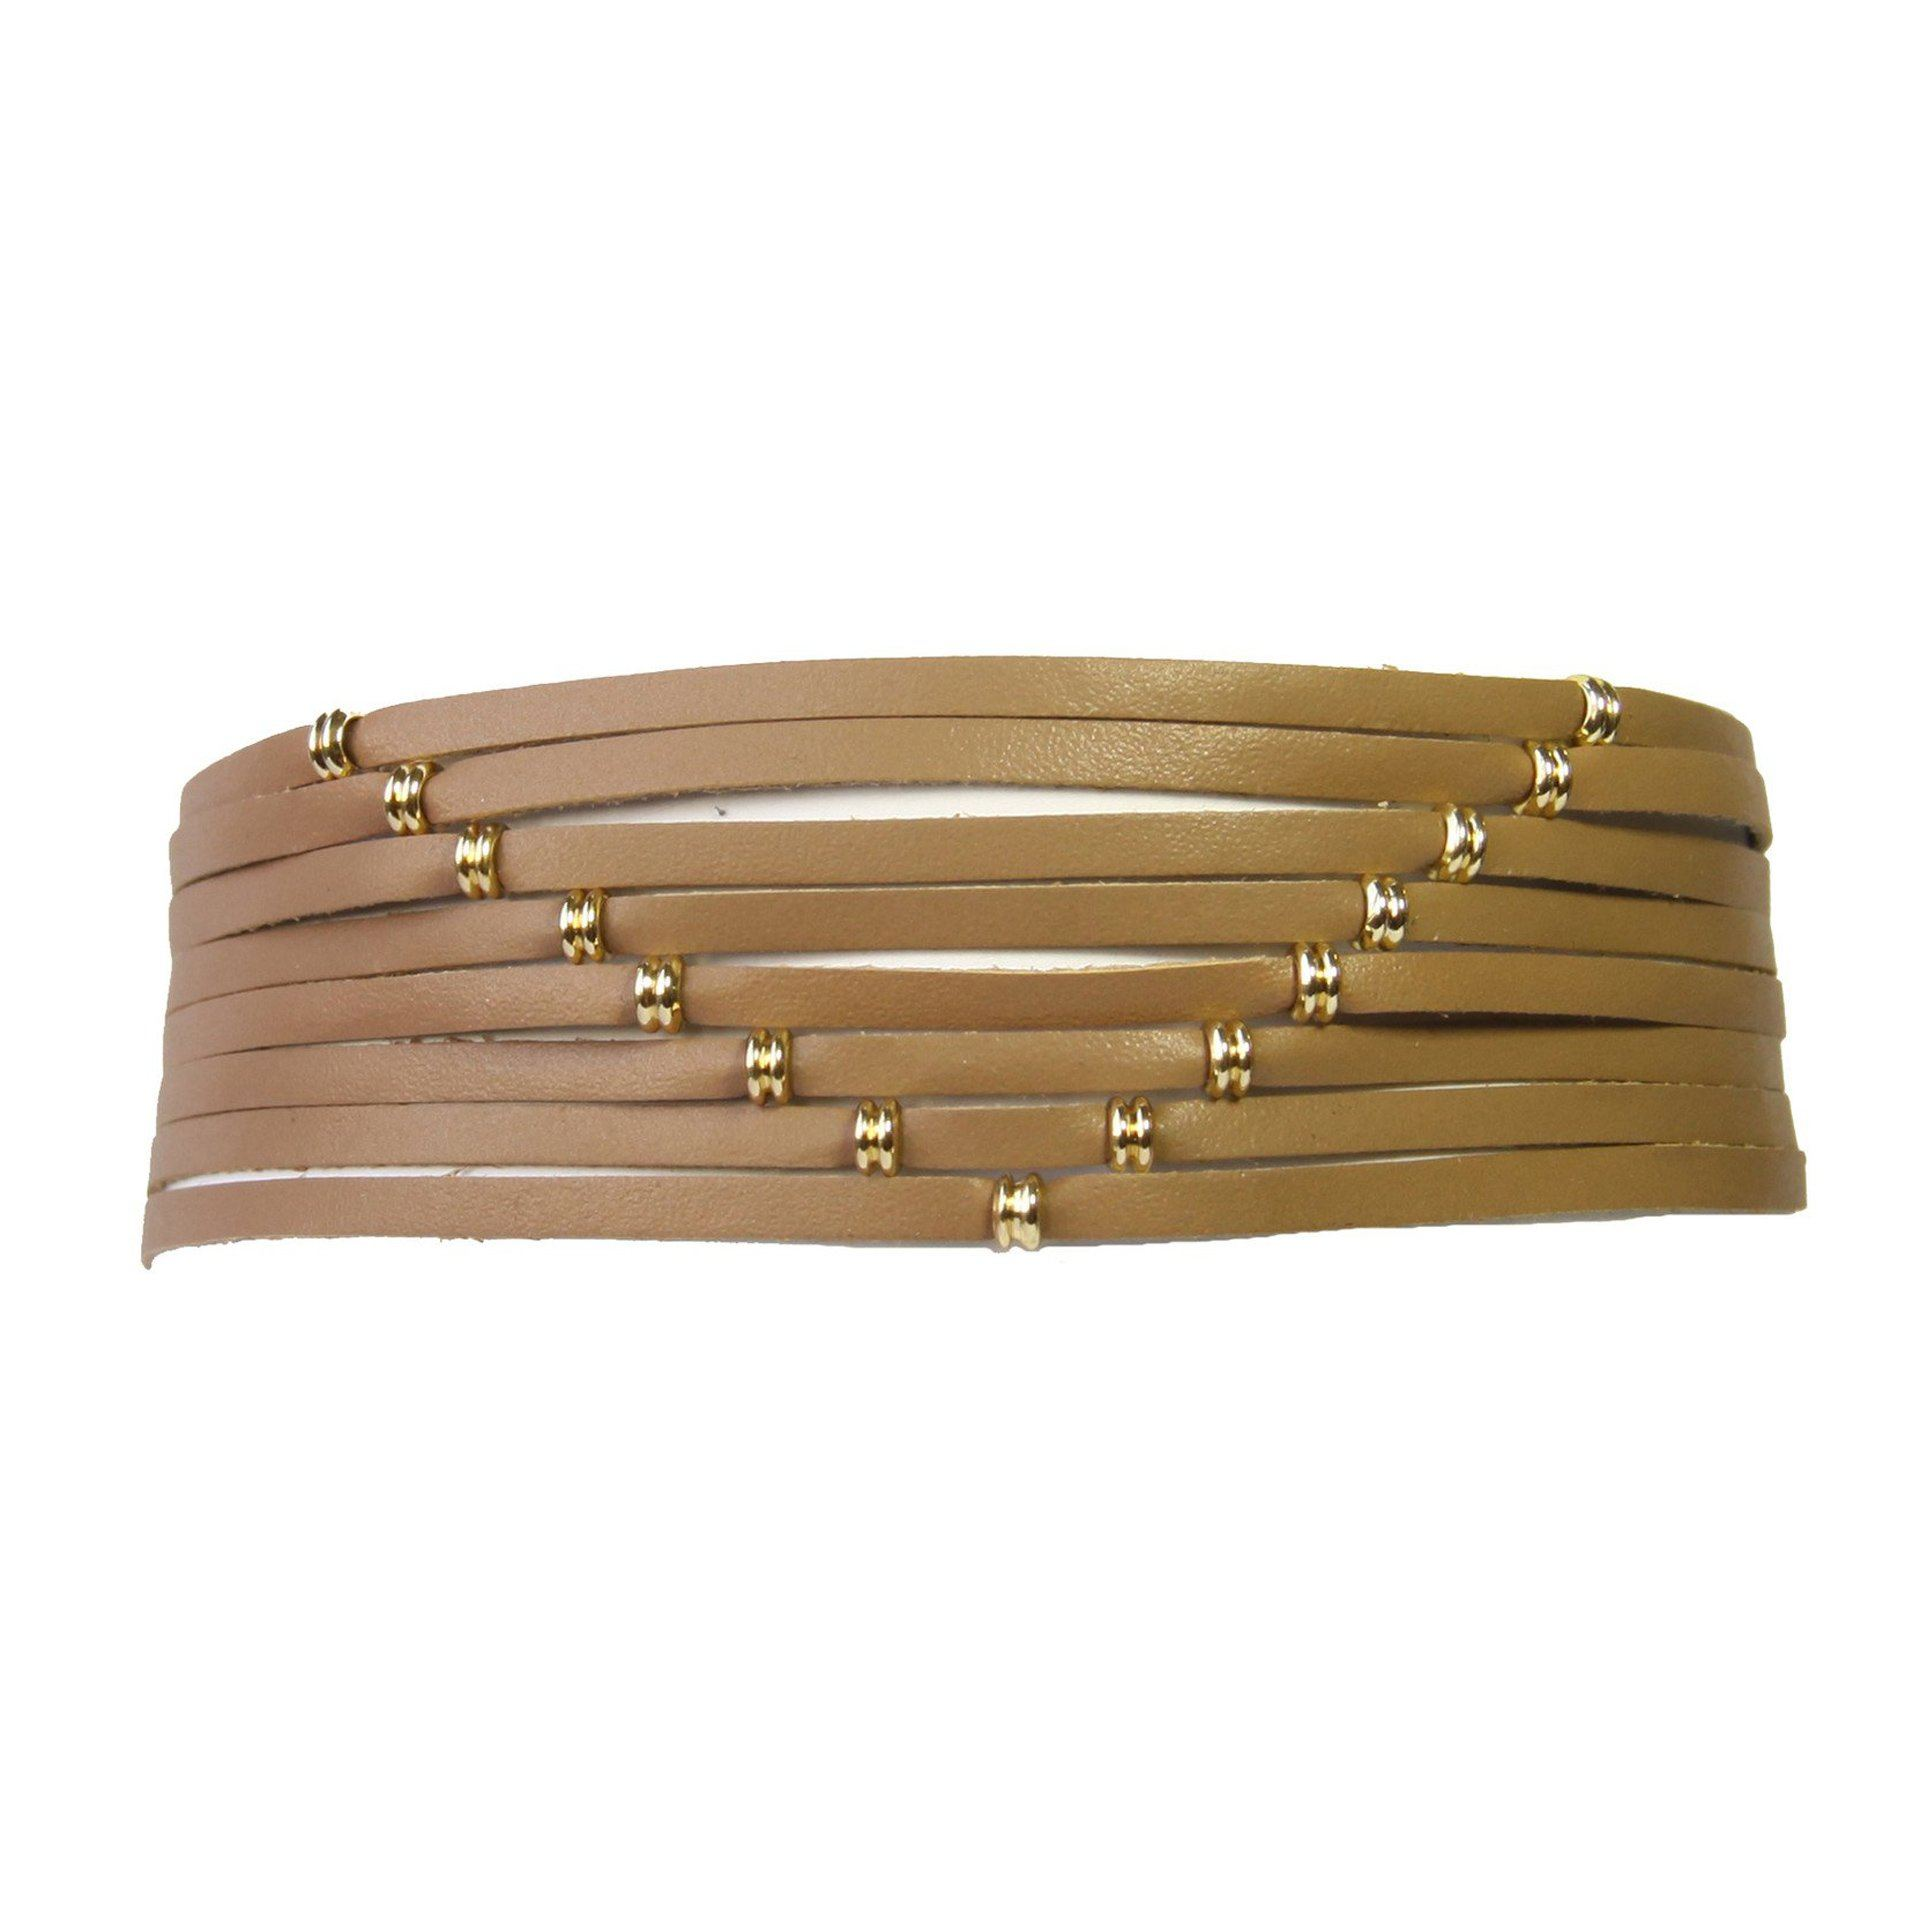 Jagged Lines Choker Necklace - Arlo and Arrows